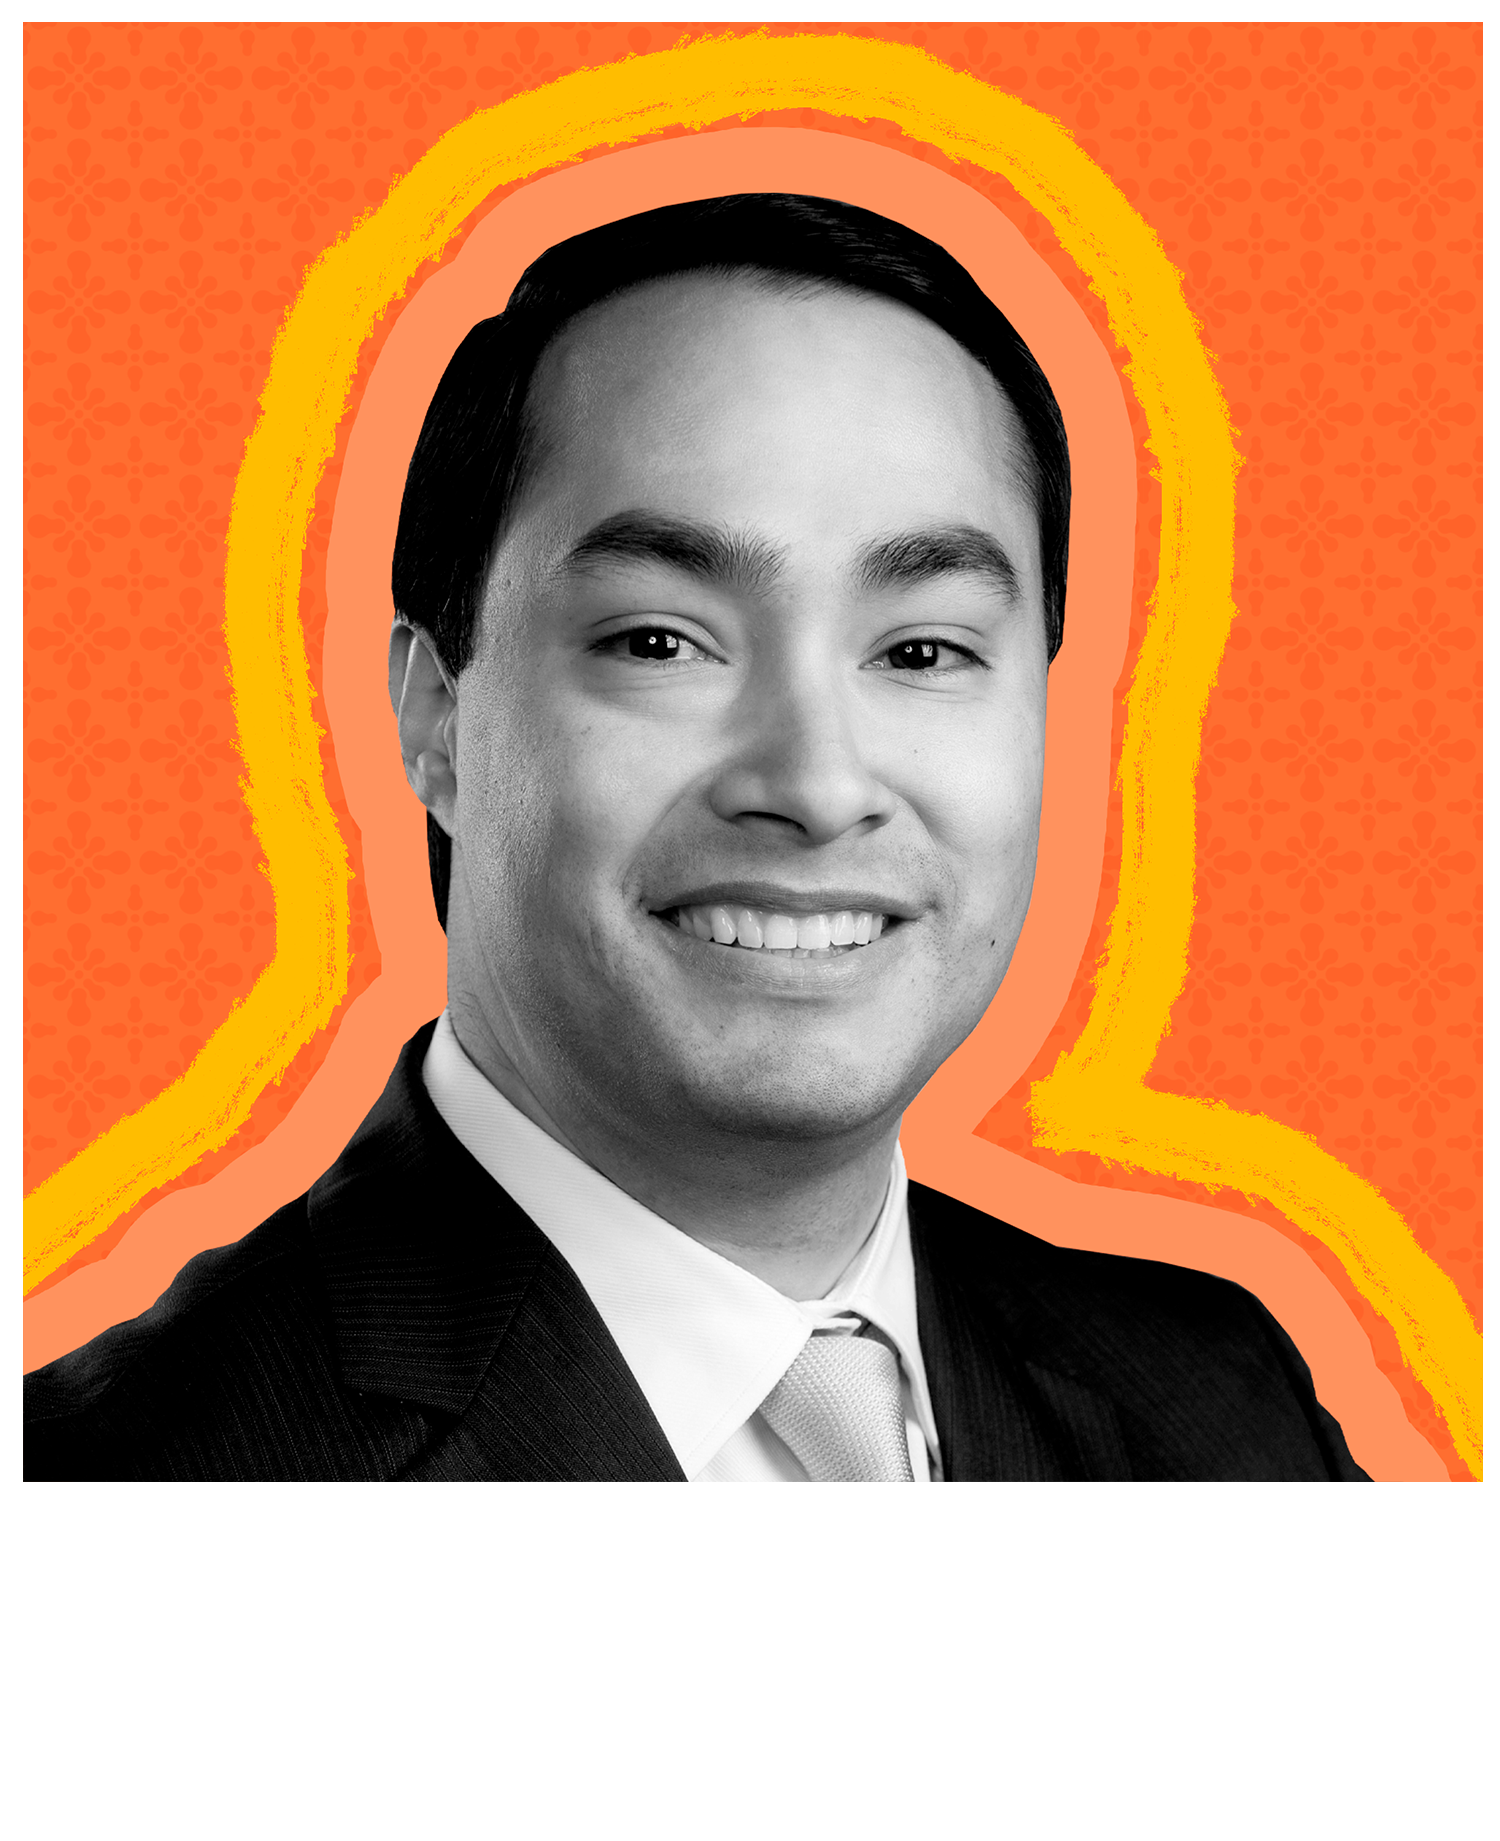 08262019---UWDA-Endorsement-Graphic-JoaquinCastro-Slide-v2